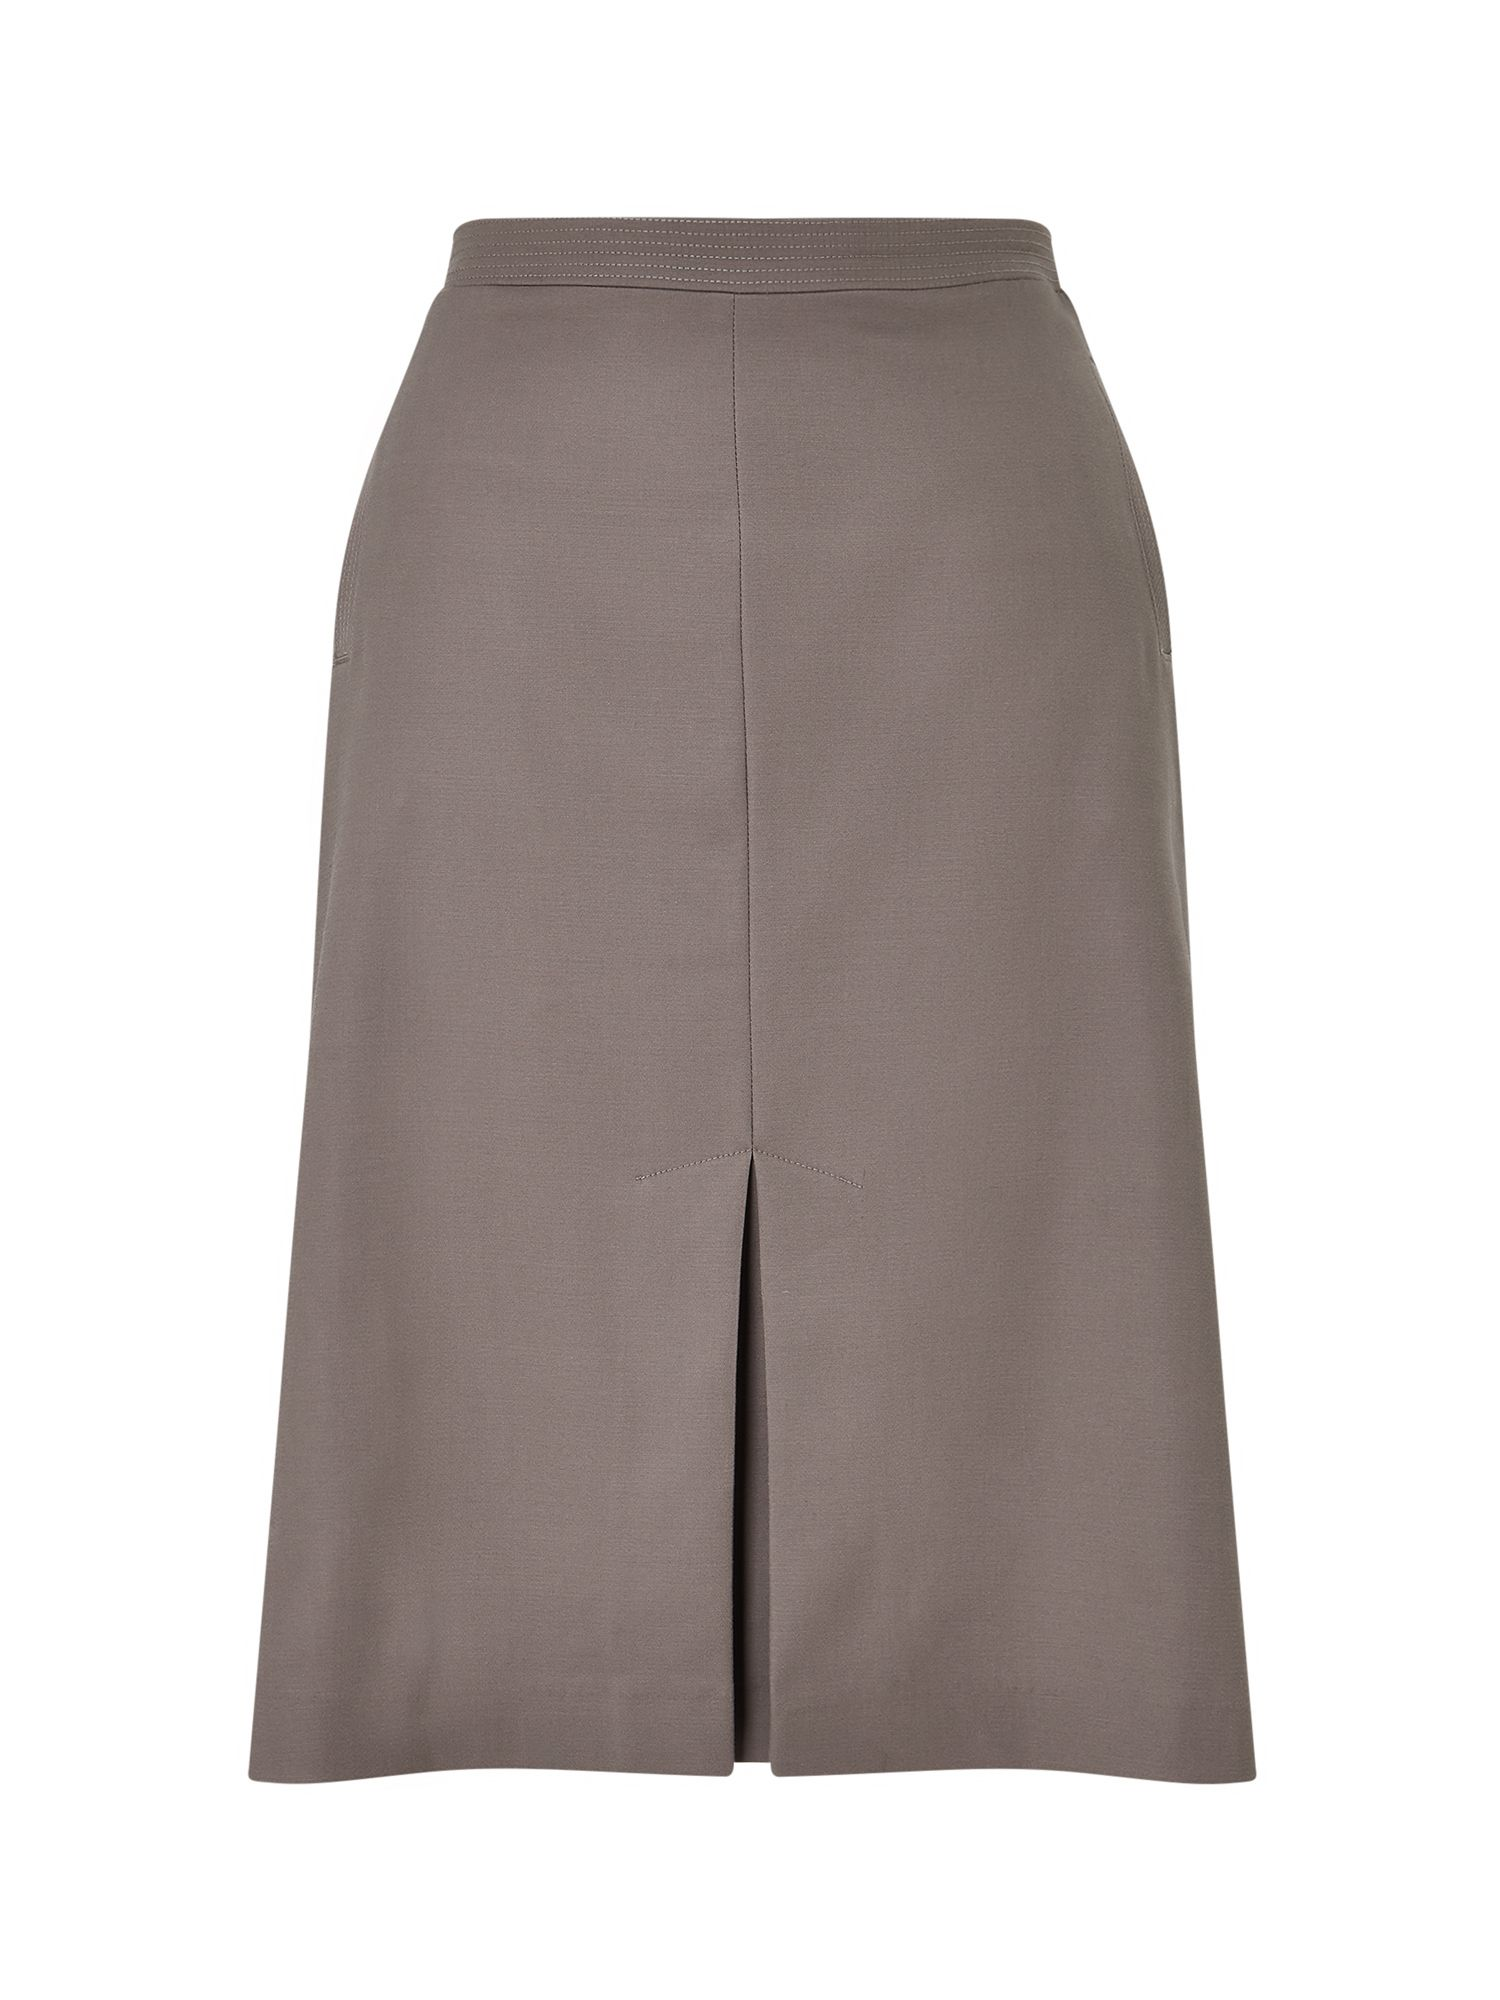 Eastex Safari Skirt, Neutral